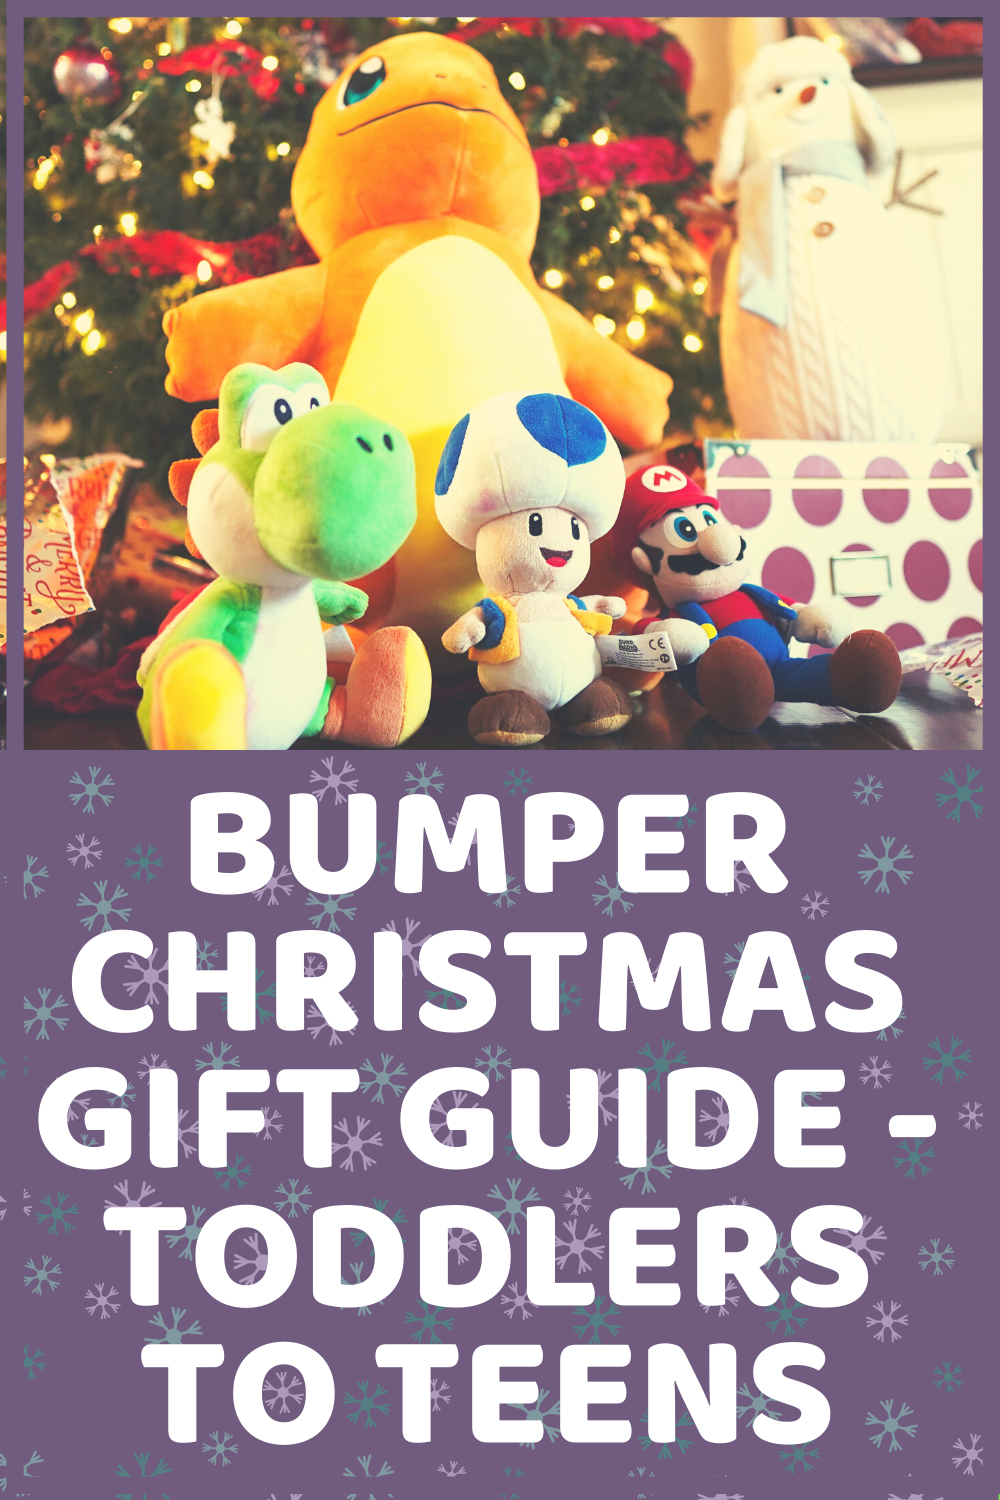 Bumper Christmas Gift Guide - Toddlers To Teens